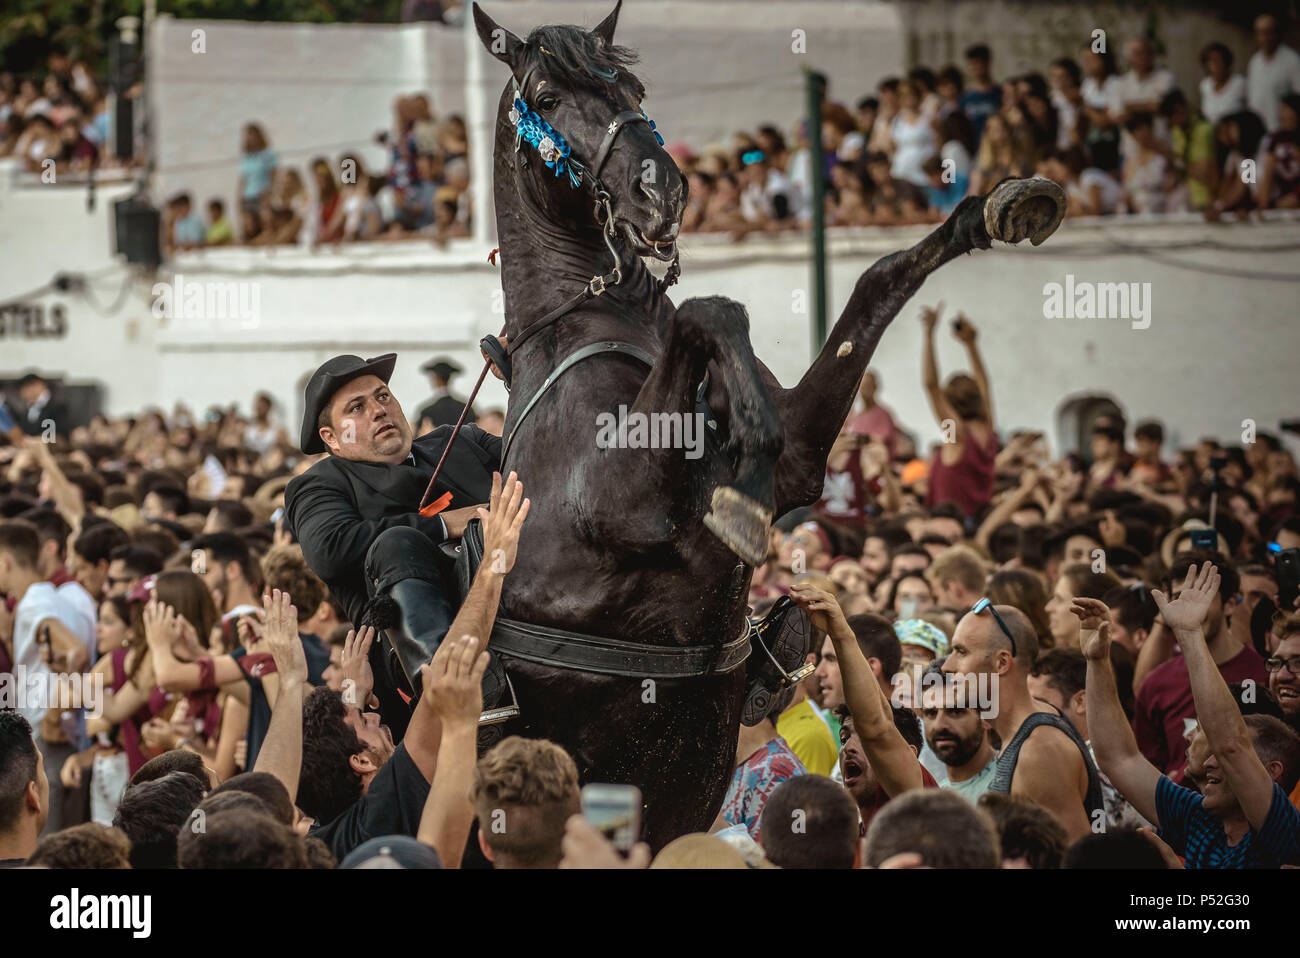 Ciutadella, Spain. 24 June, 2018:  A 'caixer' (horse rider) rears up on his horse surrounded by a cheering crowd at the beginning of the 'Jocs des Pla' (medieval tournament) during the traditional 'Sant Joan' (Saint John) festival in Ciutadella de Menorca Credit: Matthias Oesterle/Alamy Live News - Stock Image